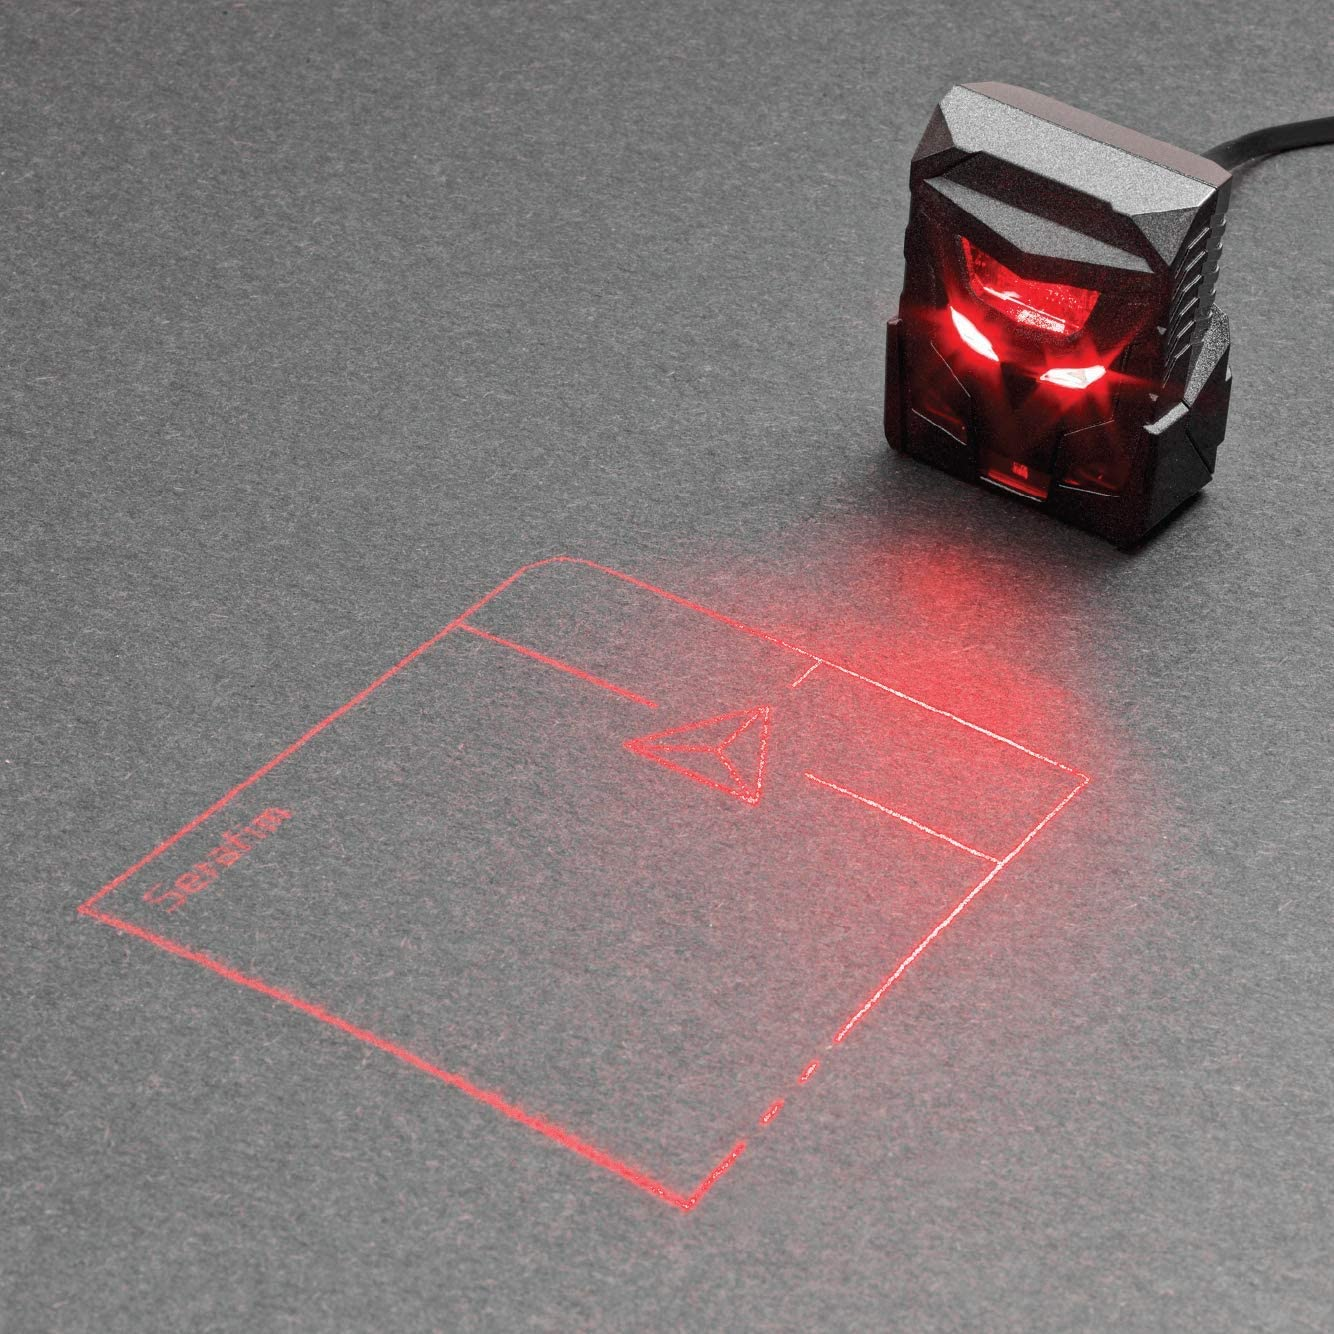 Holographic laser mouse from ODin